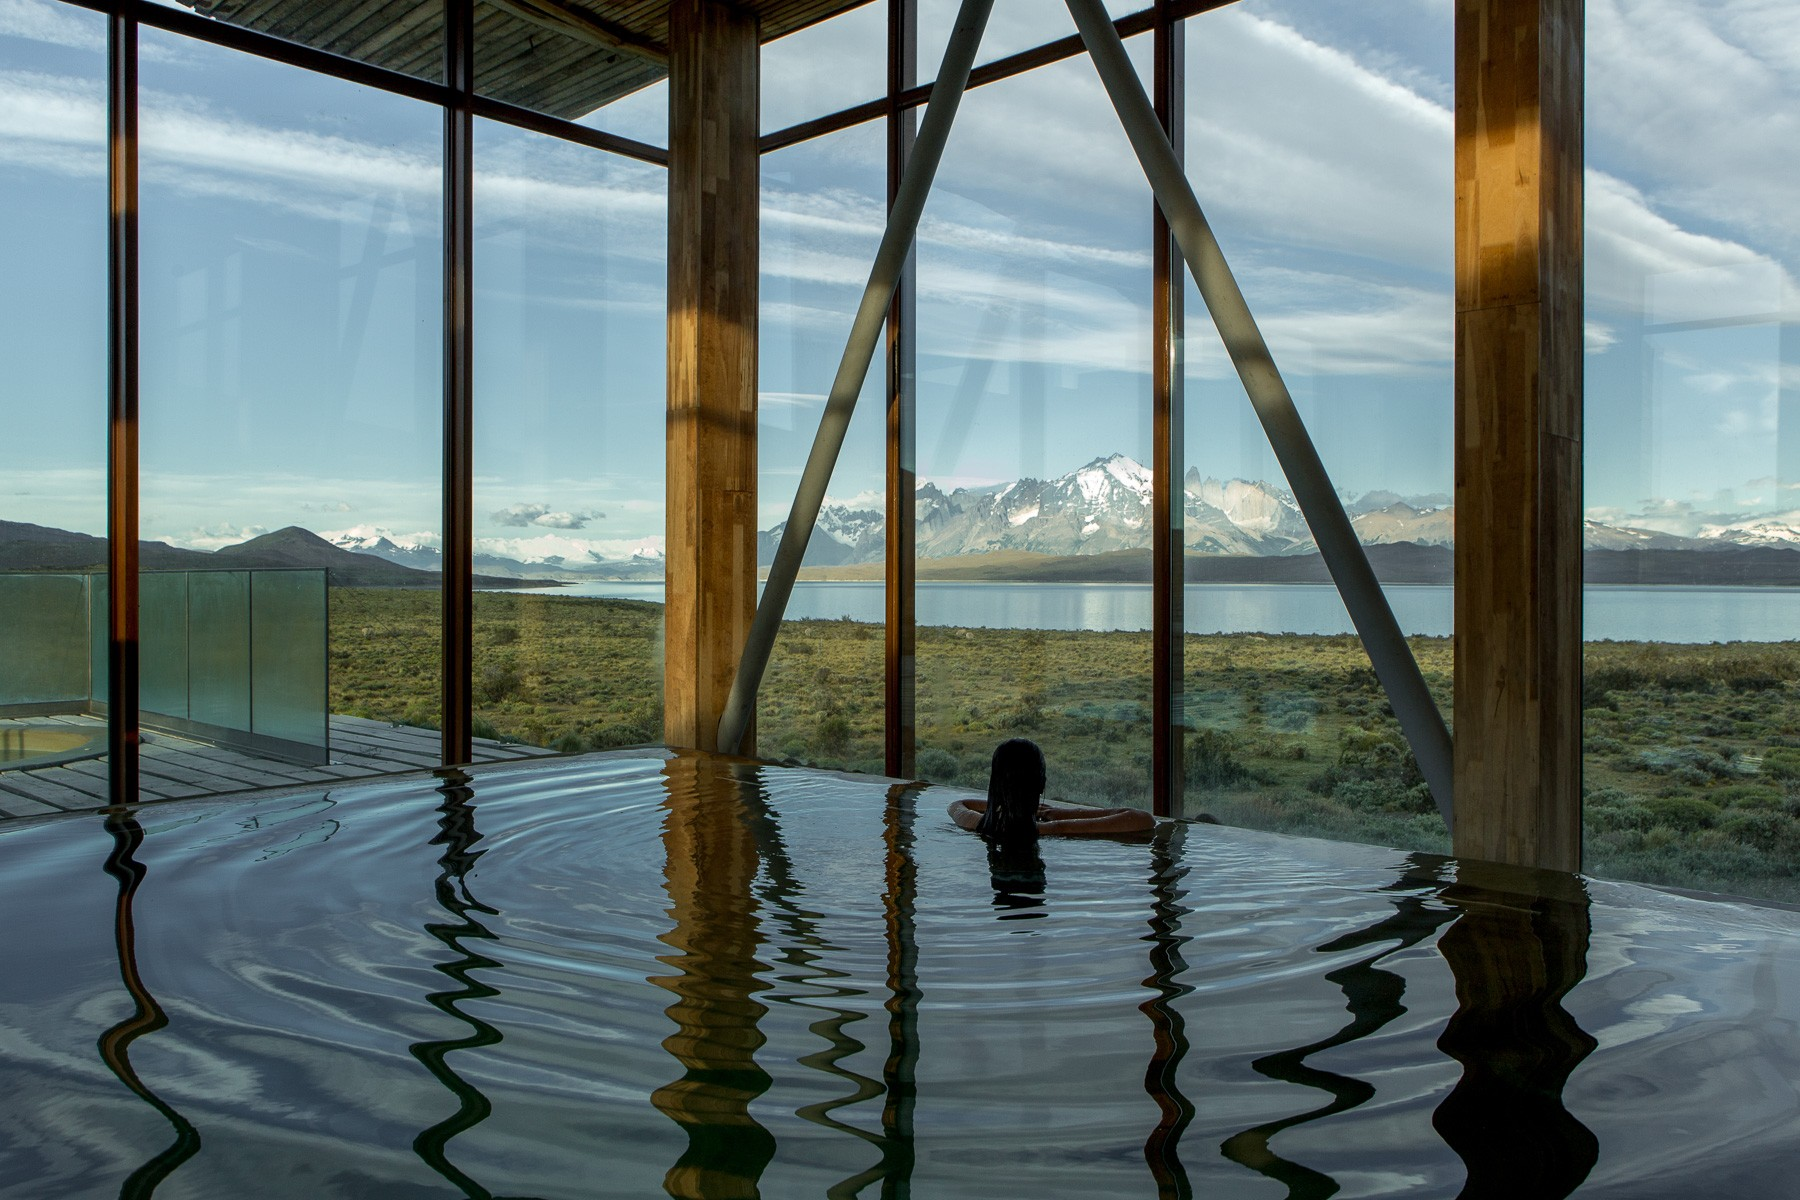 girl swimming with Torres del Paine in bacgkround